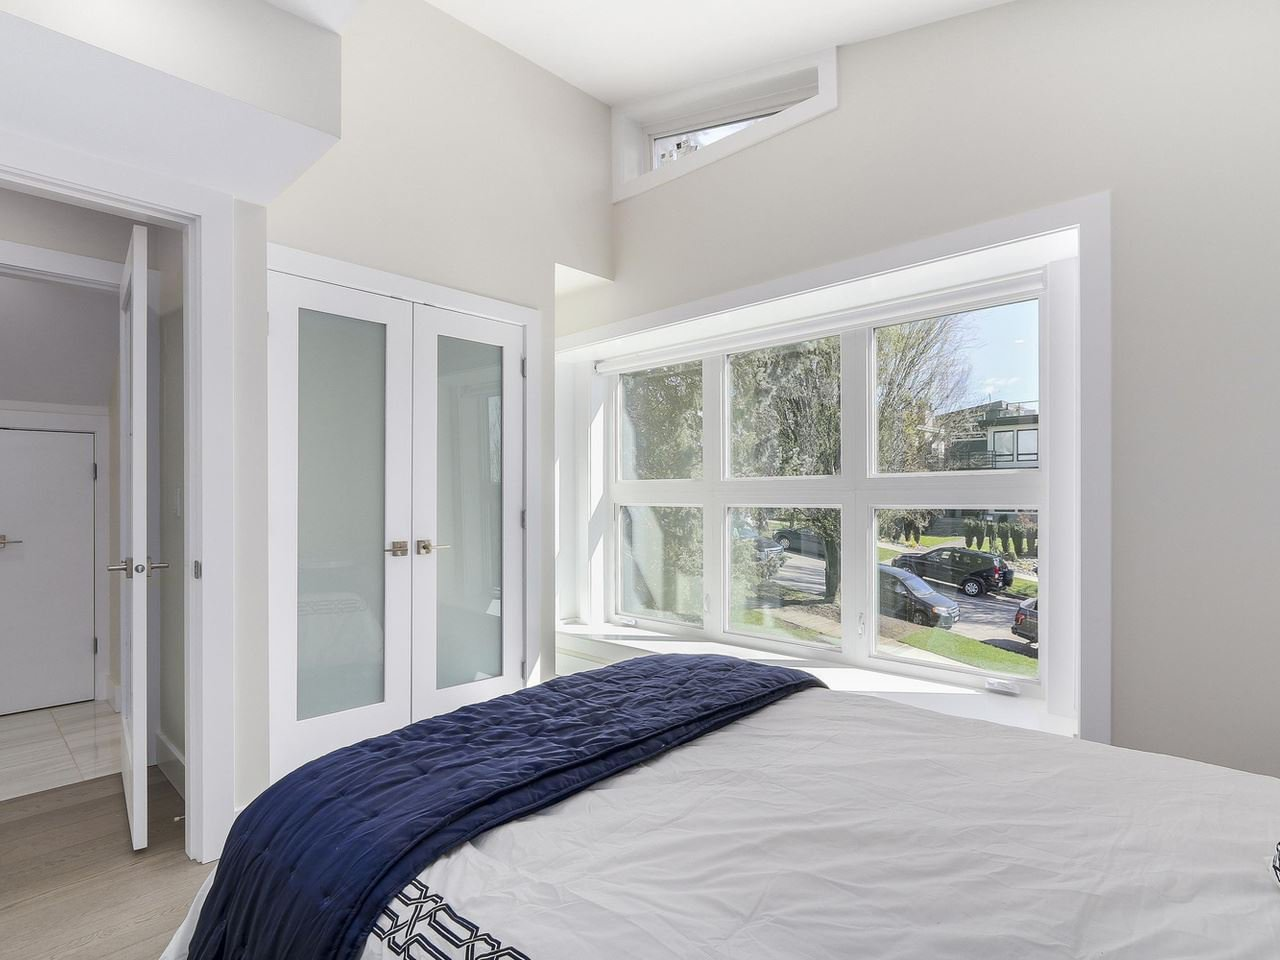 Photo 14: Photos: 3539 ETON STREET in Vancouver: Hastings East House for sale (Vancouver East)  : MLS®# R2159493